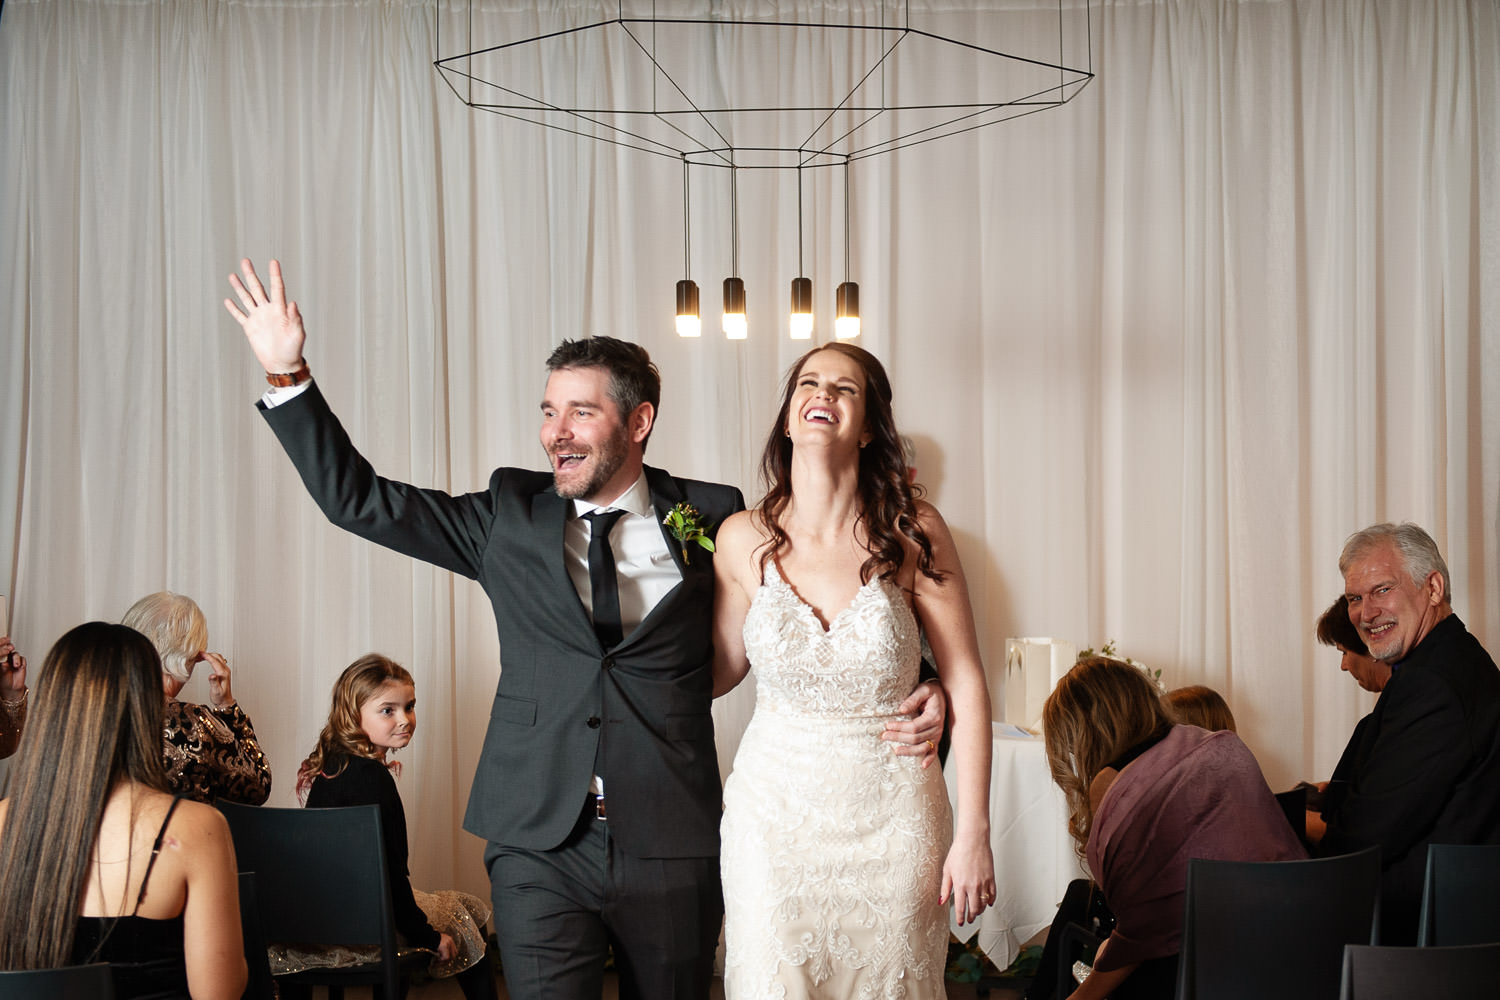 Just married in an intimate wedding in Calgary by Tara Whittaker Photography